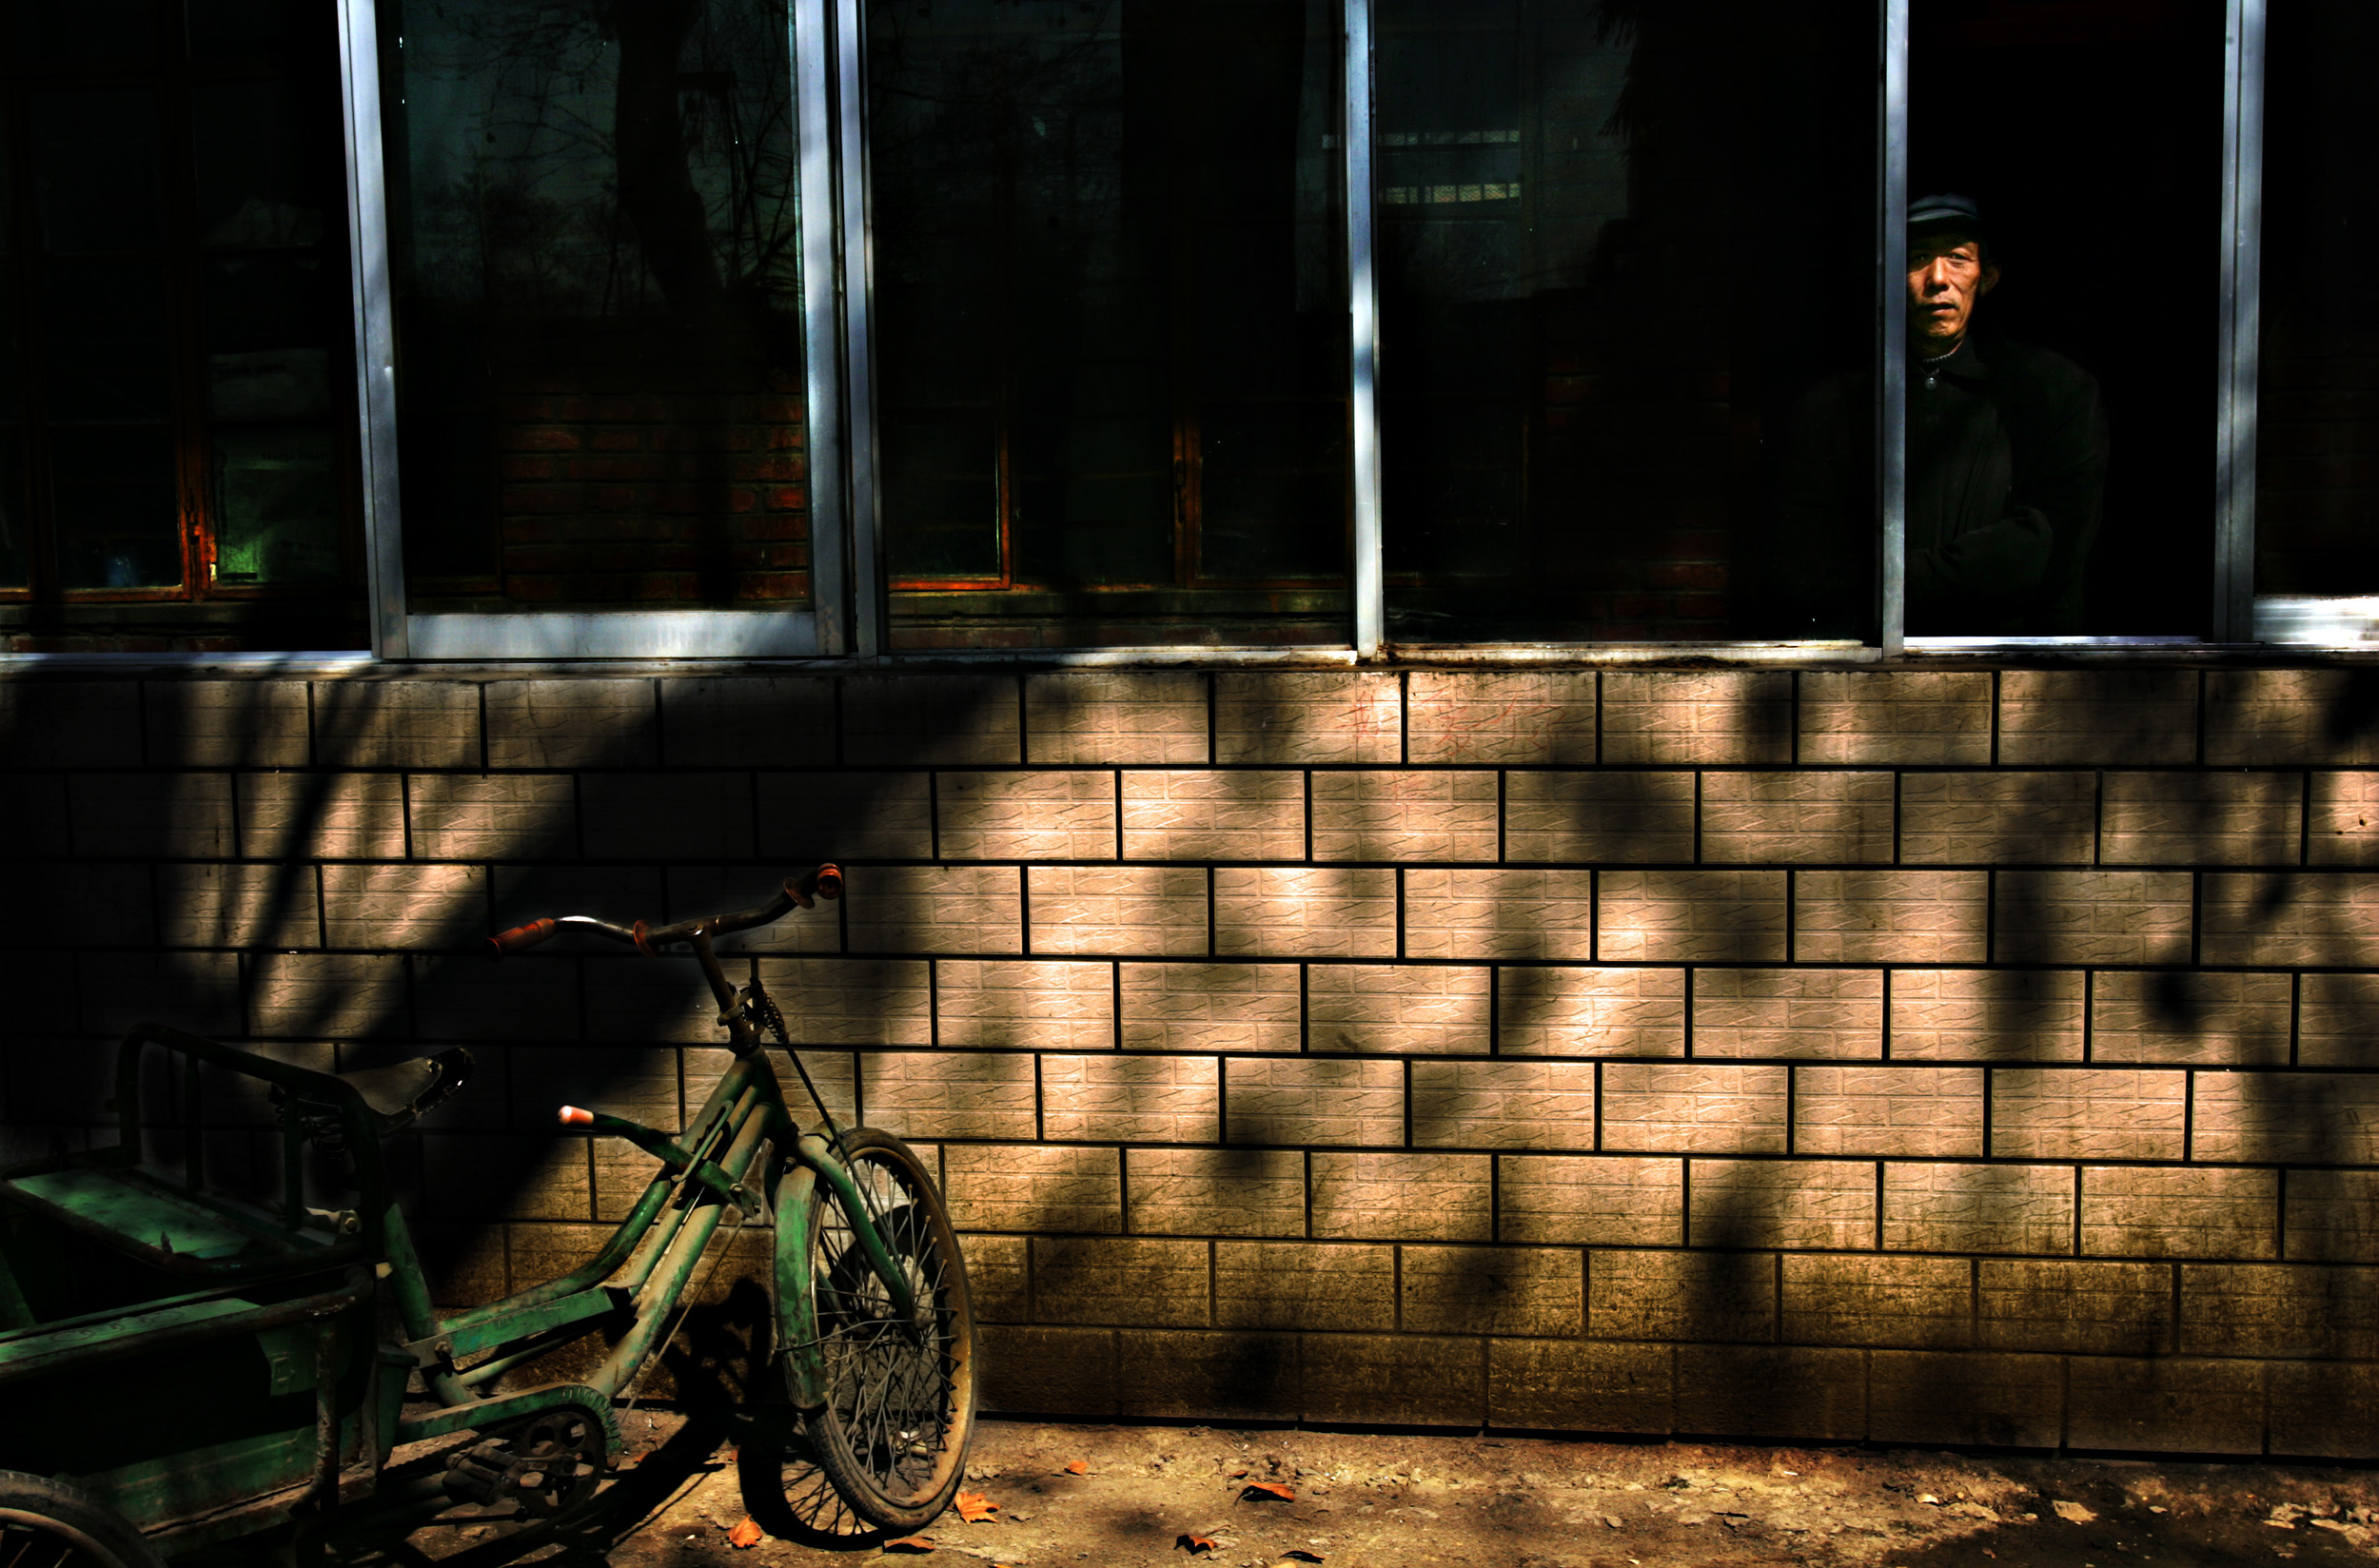 A patient gazes out the window in the cancer ward of Shenqiu County Hospital.